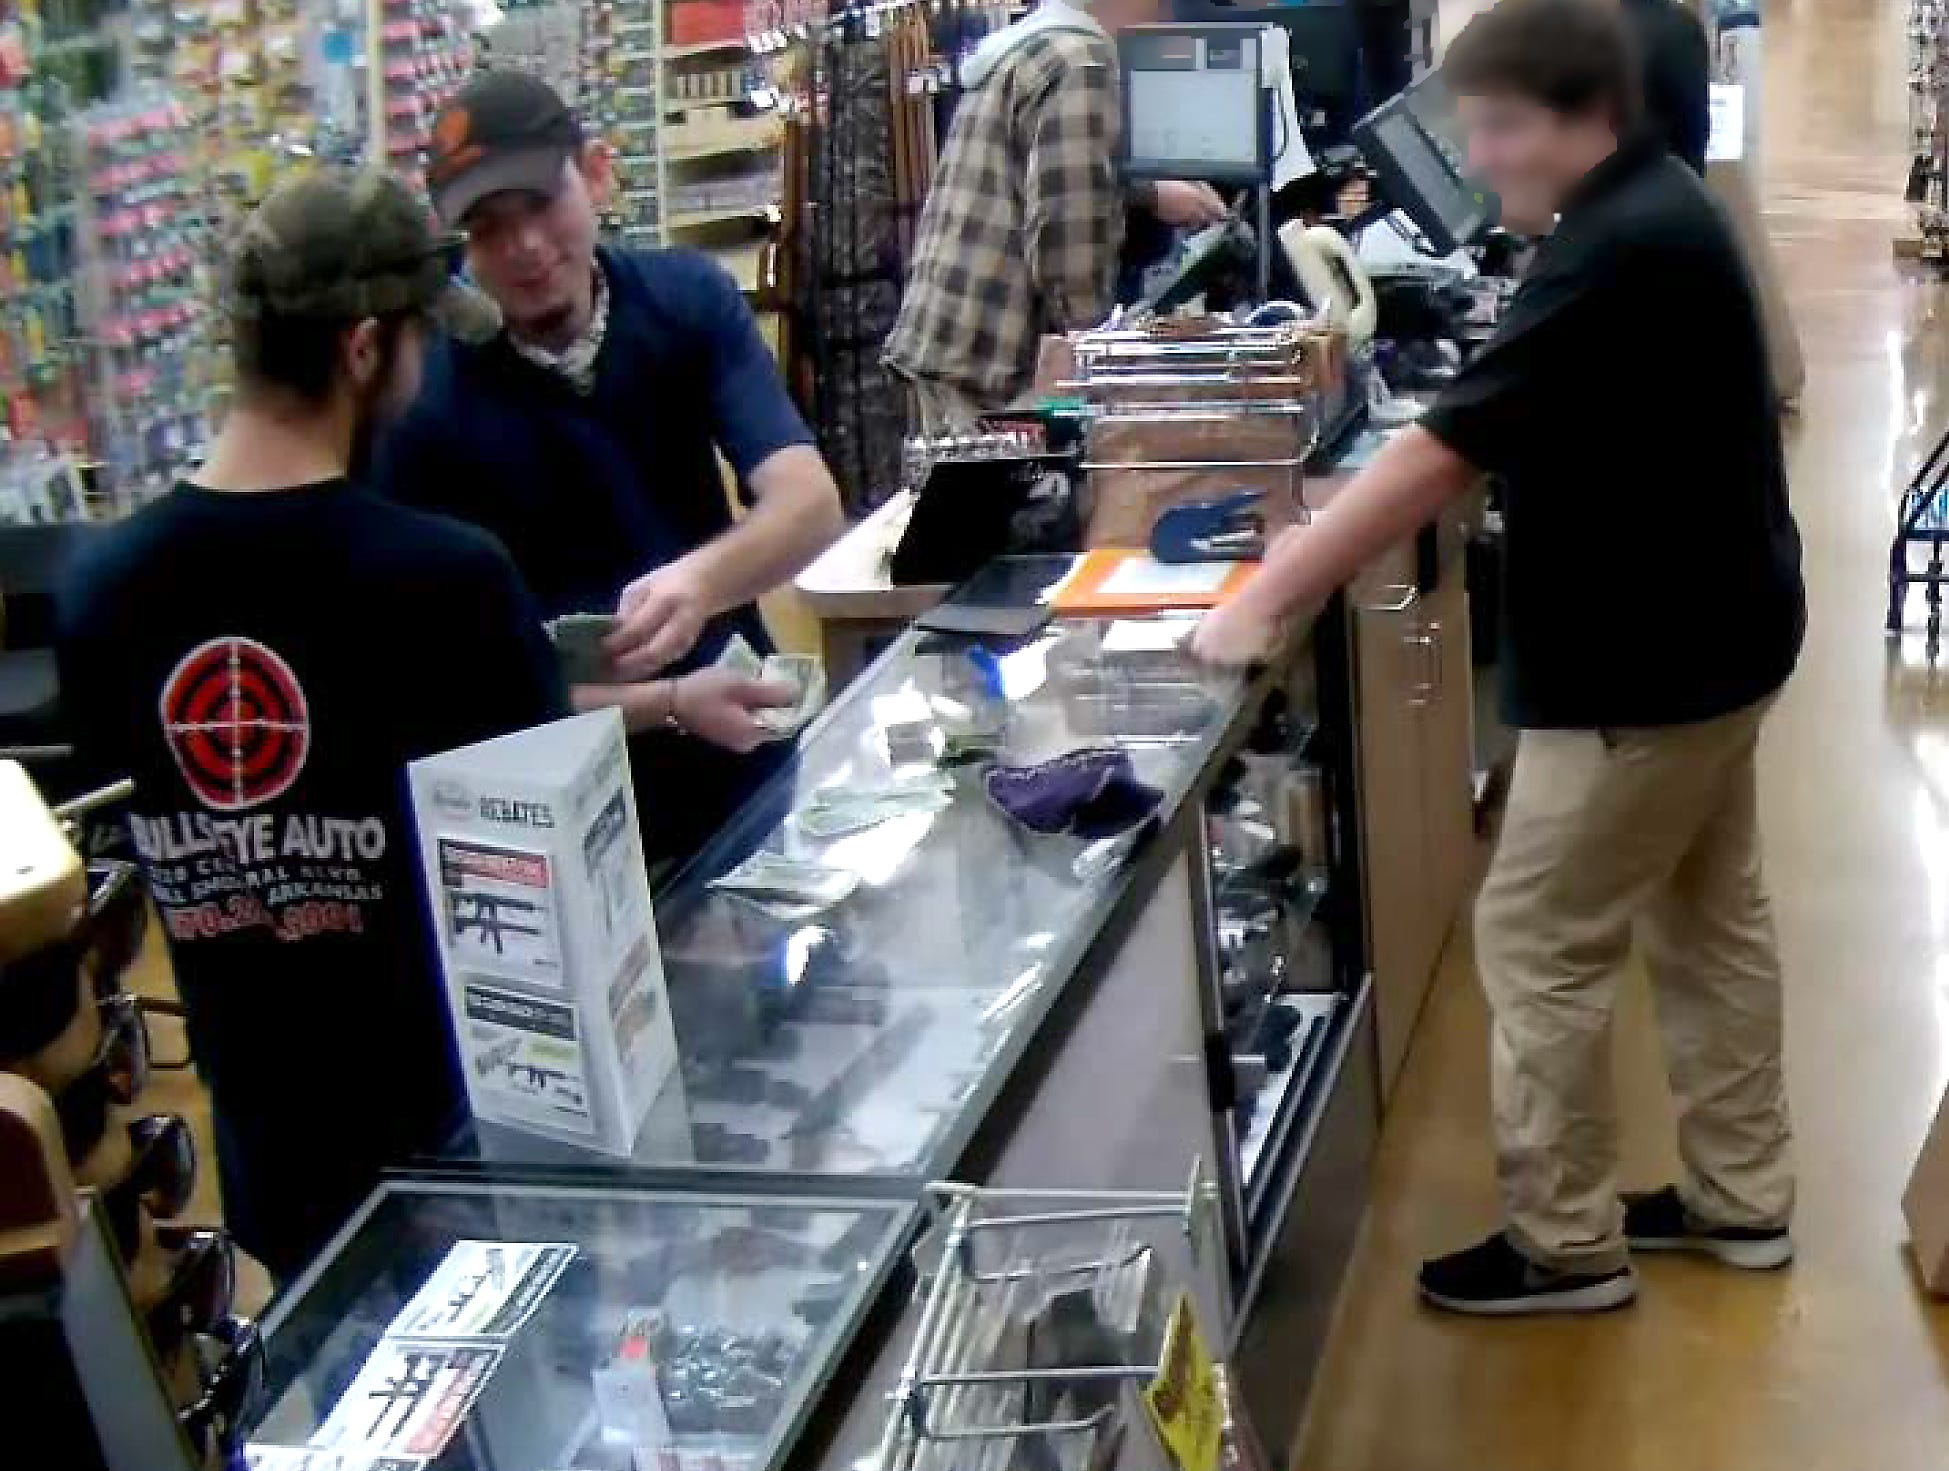 In a still frame purported to be from a surveillance video inside the Mountain Home Harps grocery store, Nicholas Ian Roos, right, hands money to Talmadge Pendergrass. Pendergrass purchased a handgun from the store and gave it Roos who less than 24 hours later murdered a Midway couple. A recently filed lawsuit filed on behalf of the couple's estate seeks monetary damages from the Company for selling the firearm.